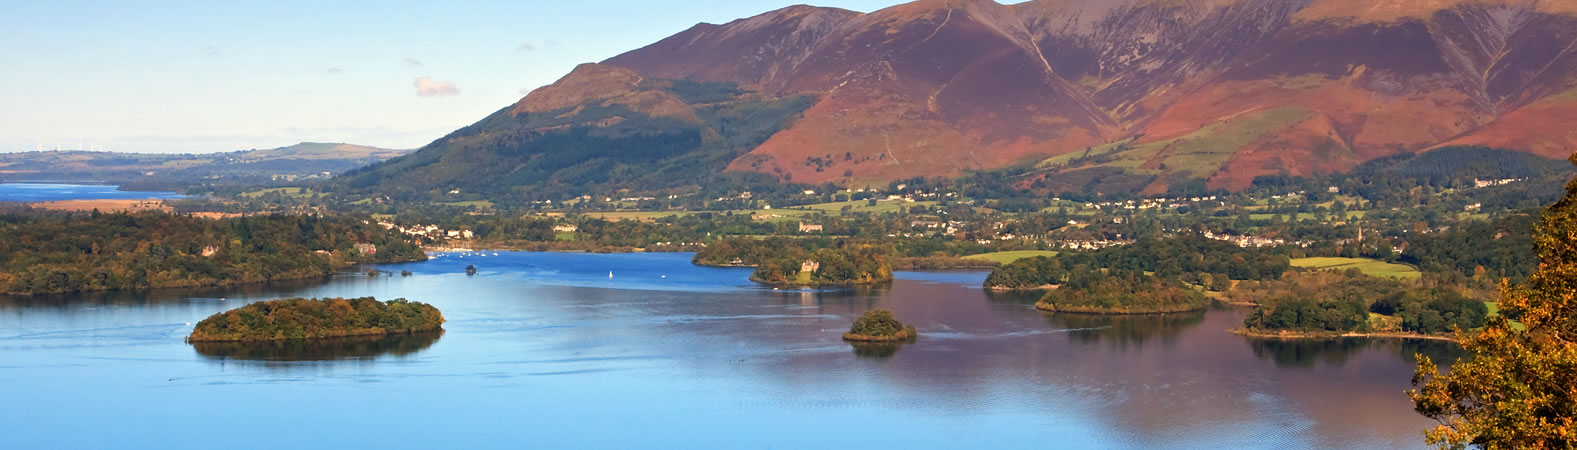 lake-district-derwentwater